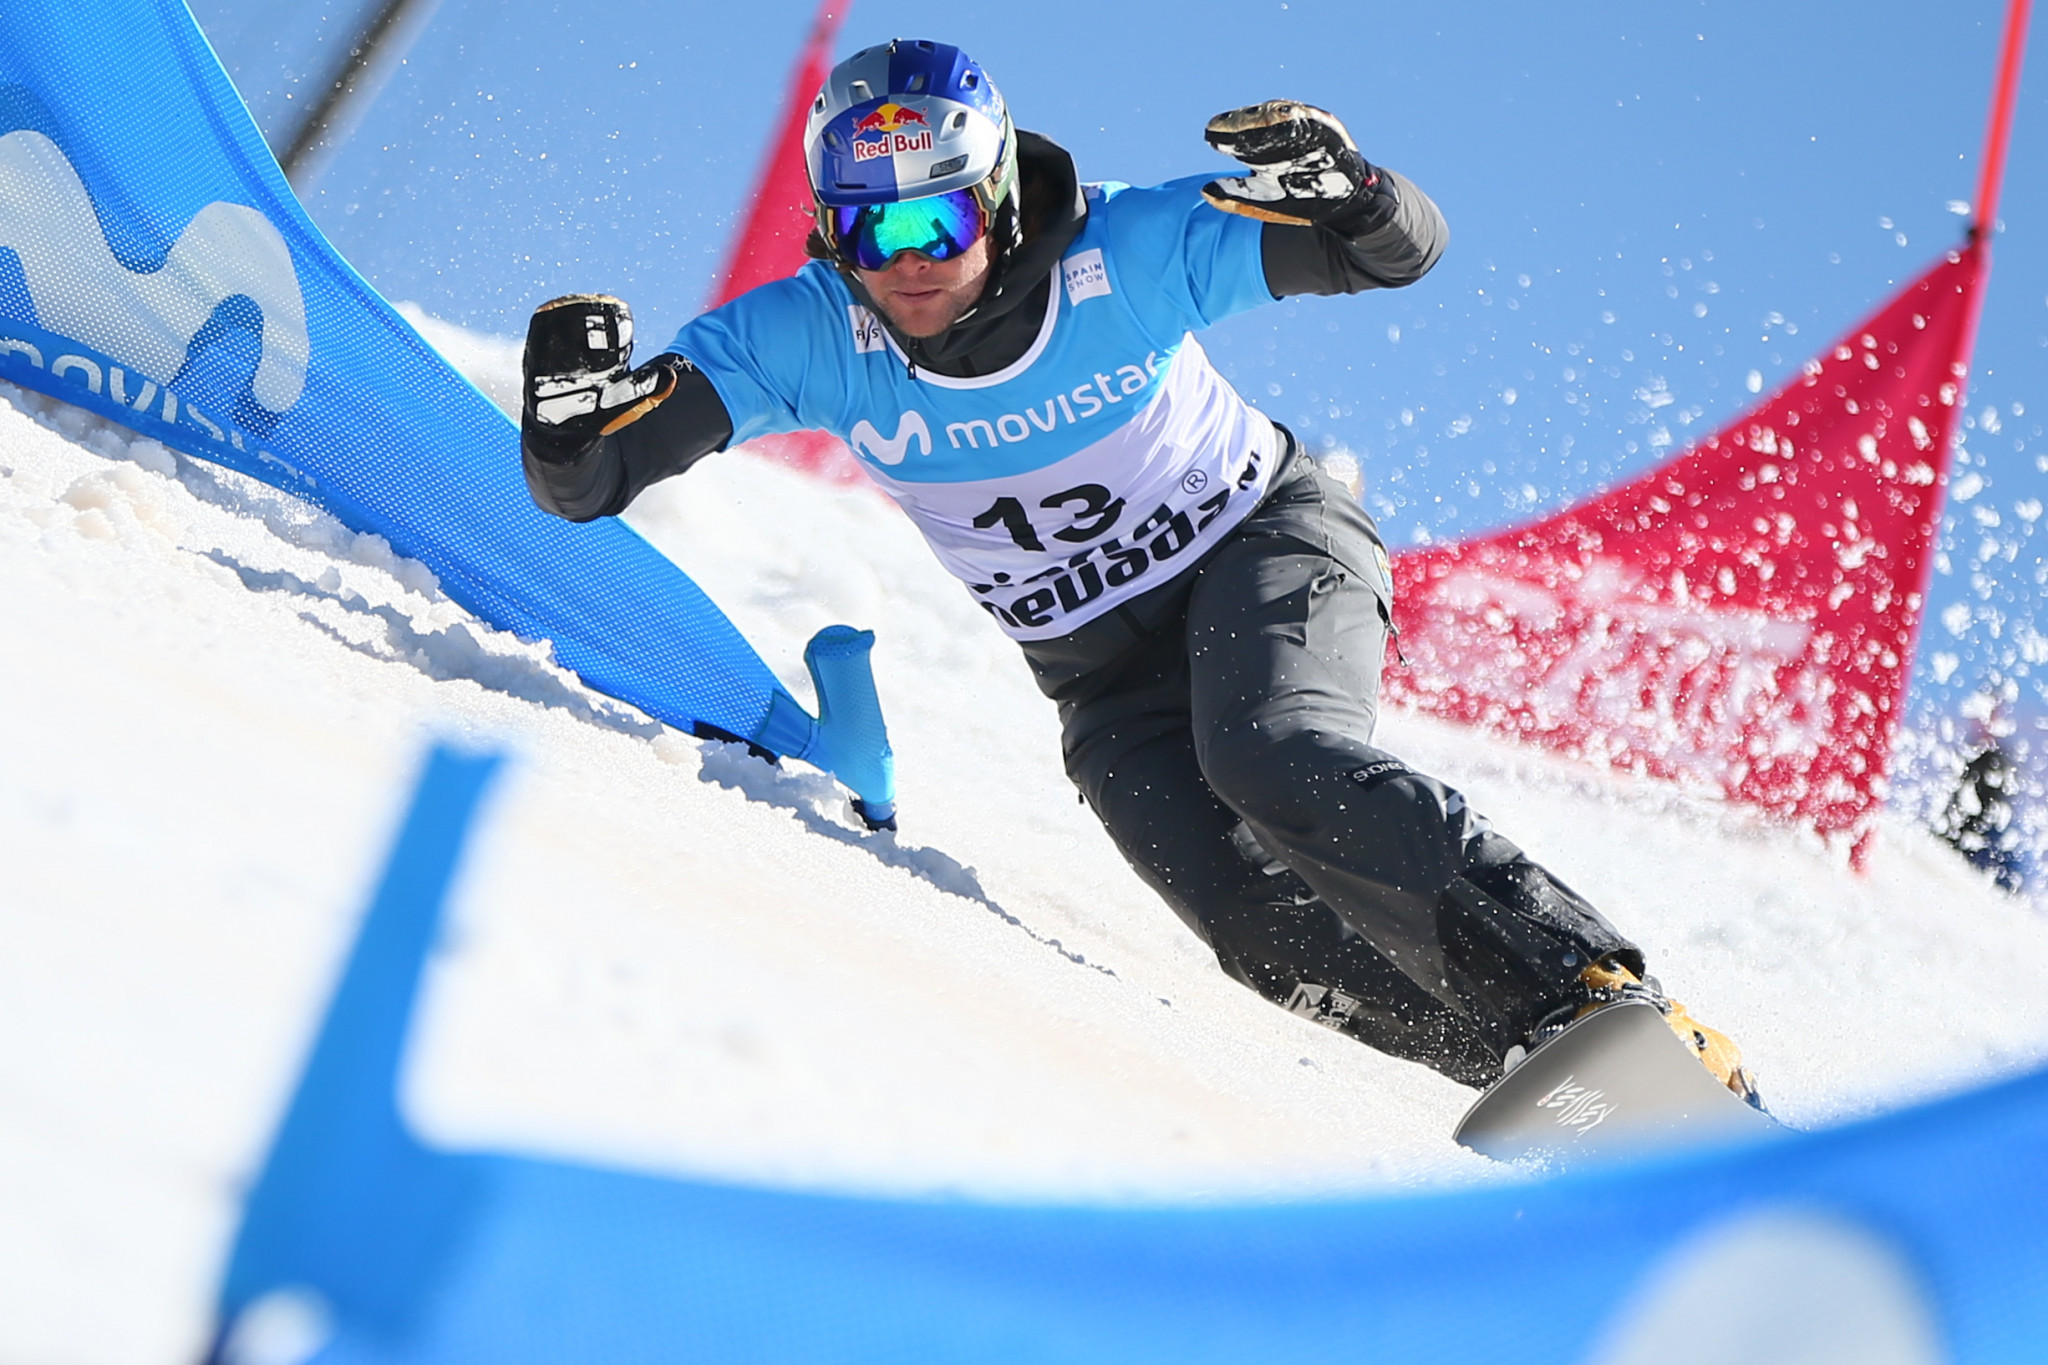 Karl and Hofmeister seeking to extend overall PGS leads at Lake Bannoye Snowboard World Cup